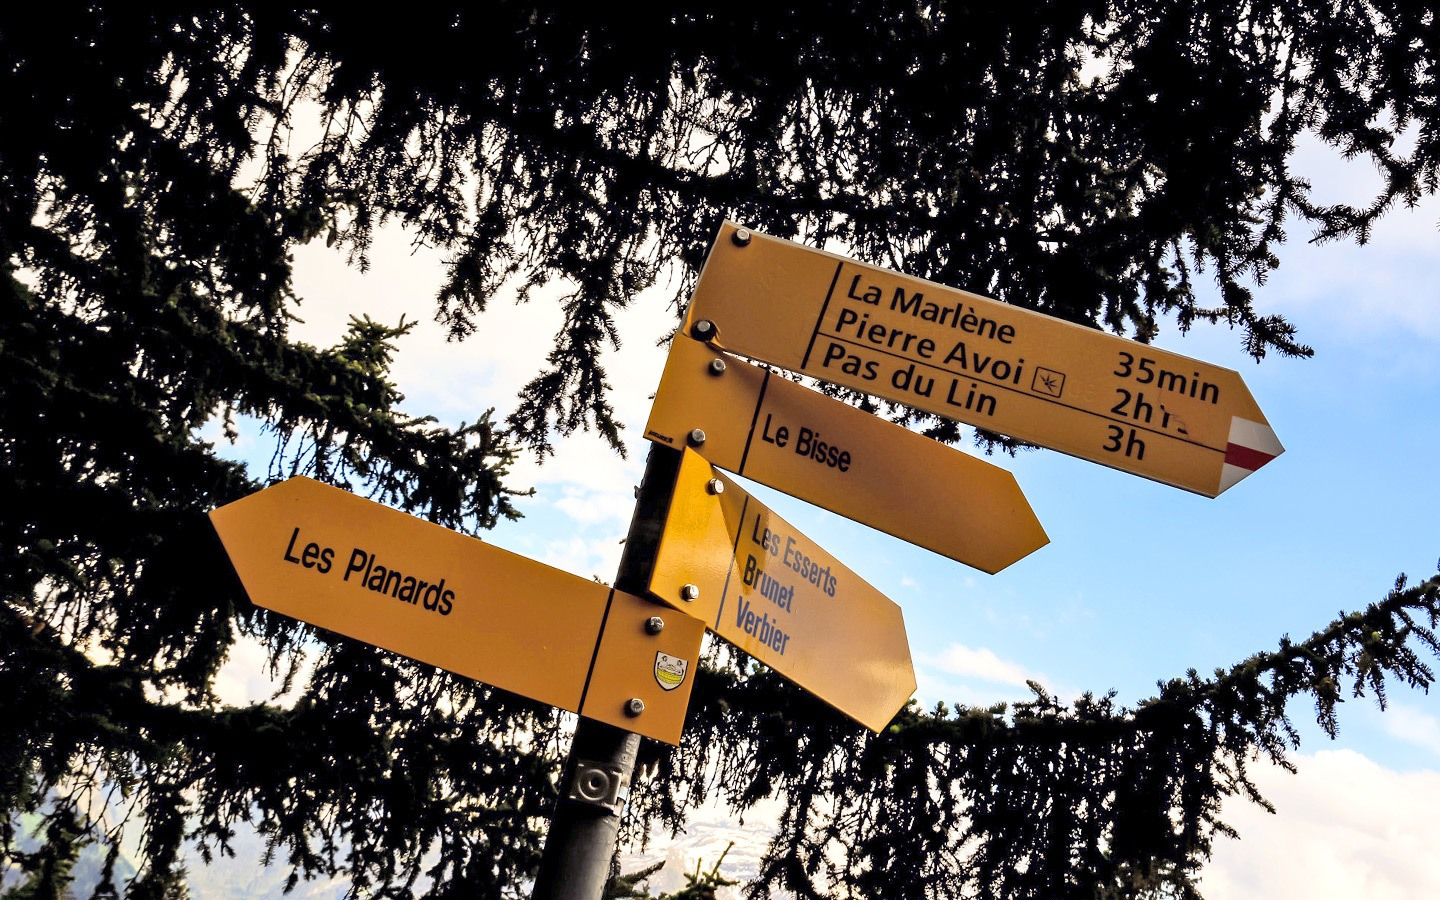 Signposts for hiking routes in Switzerland